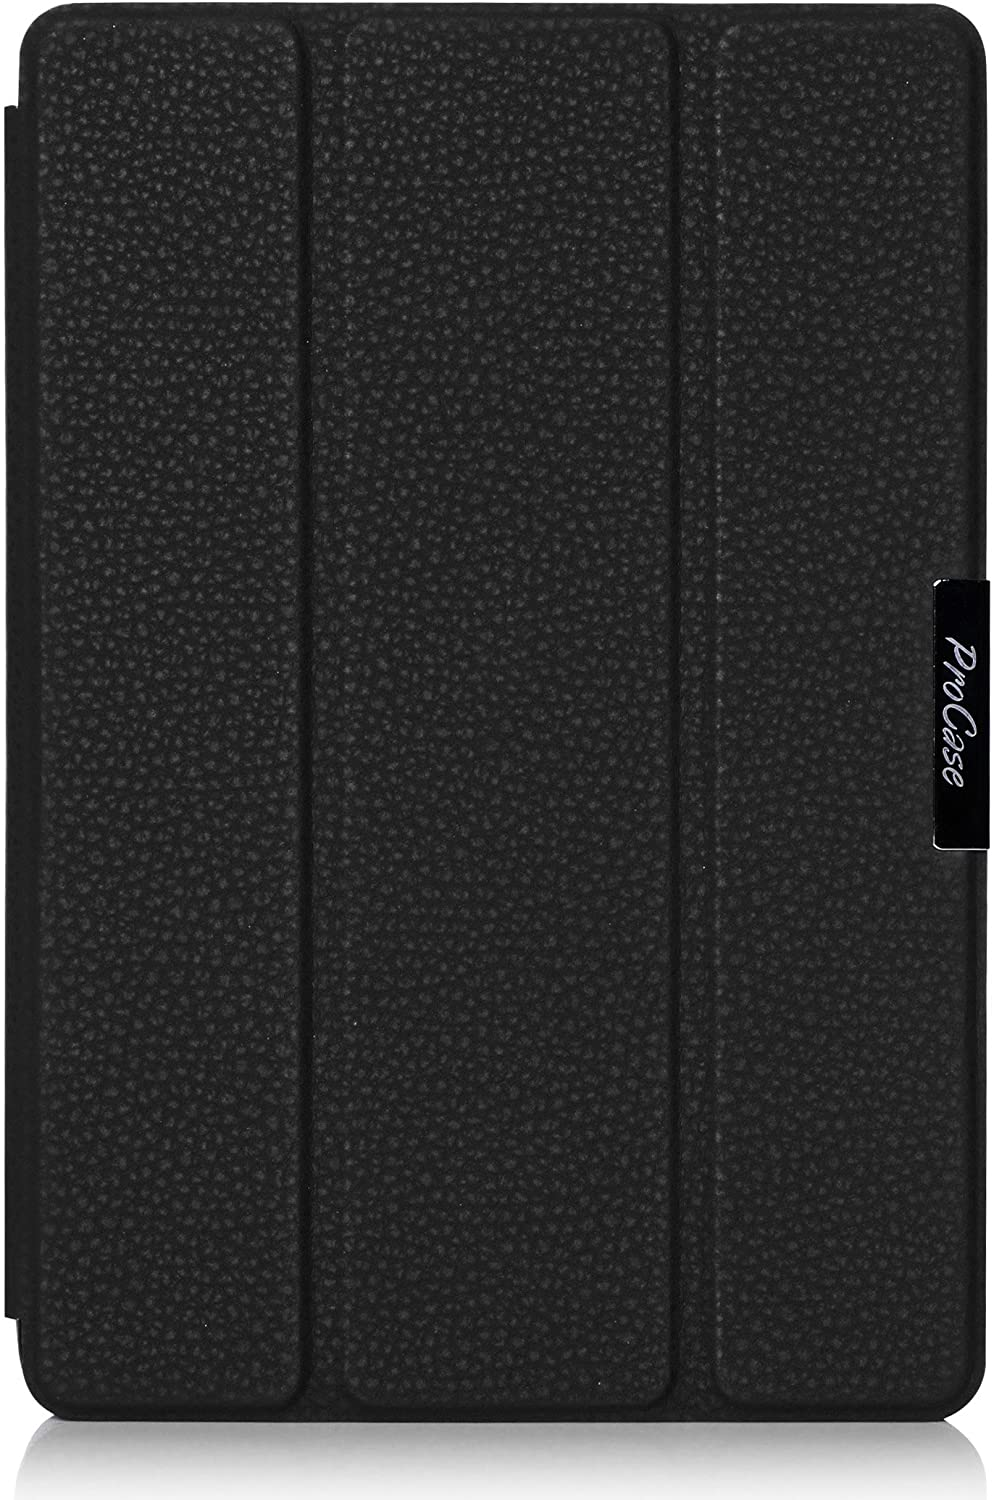 ProCase Folio Case Compatible for Galaxy Tab A 8.0 T350 P350 (Old Model), Slim Lightweight Hard Shell Standing Cover Case for 2015 Galaxy Tab A 8.0 inch SM-T350 Tablet -Black